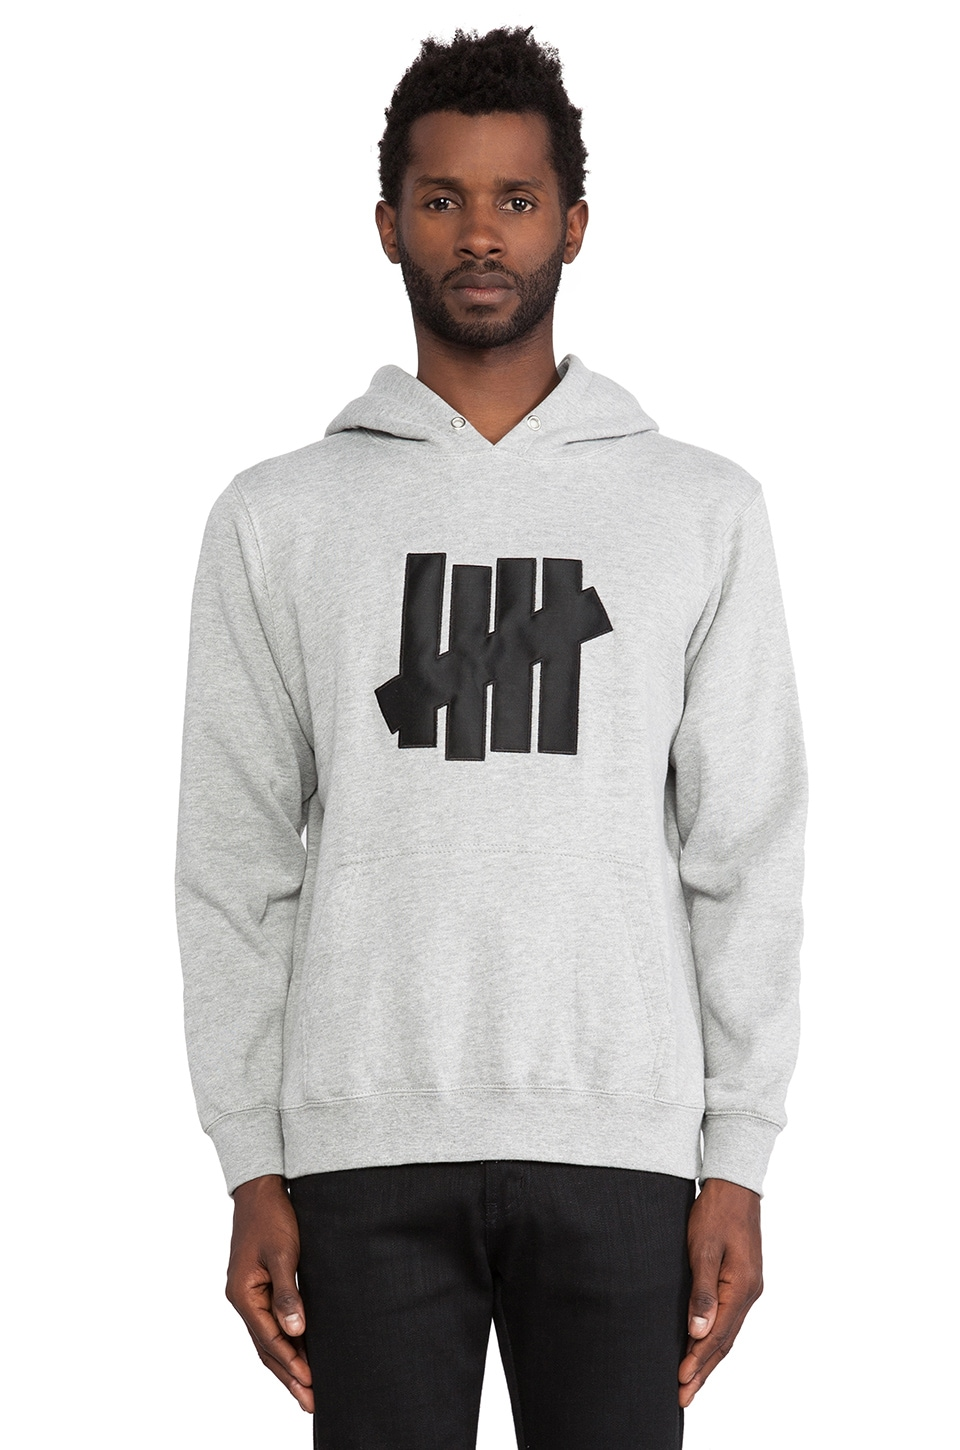 Undefeated 5 Strike Hoodie in Grey Heather